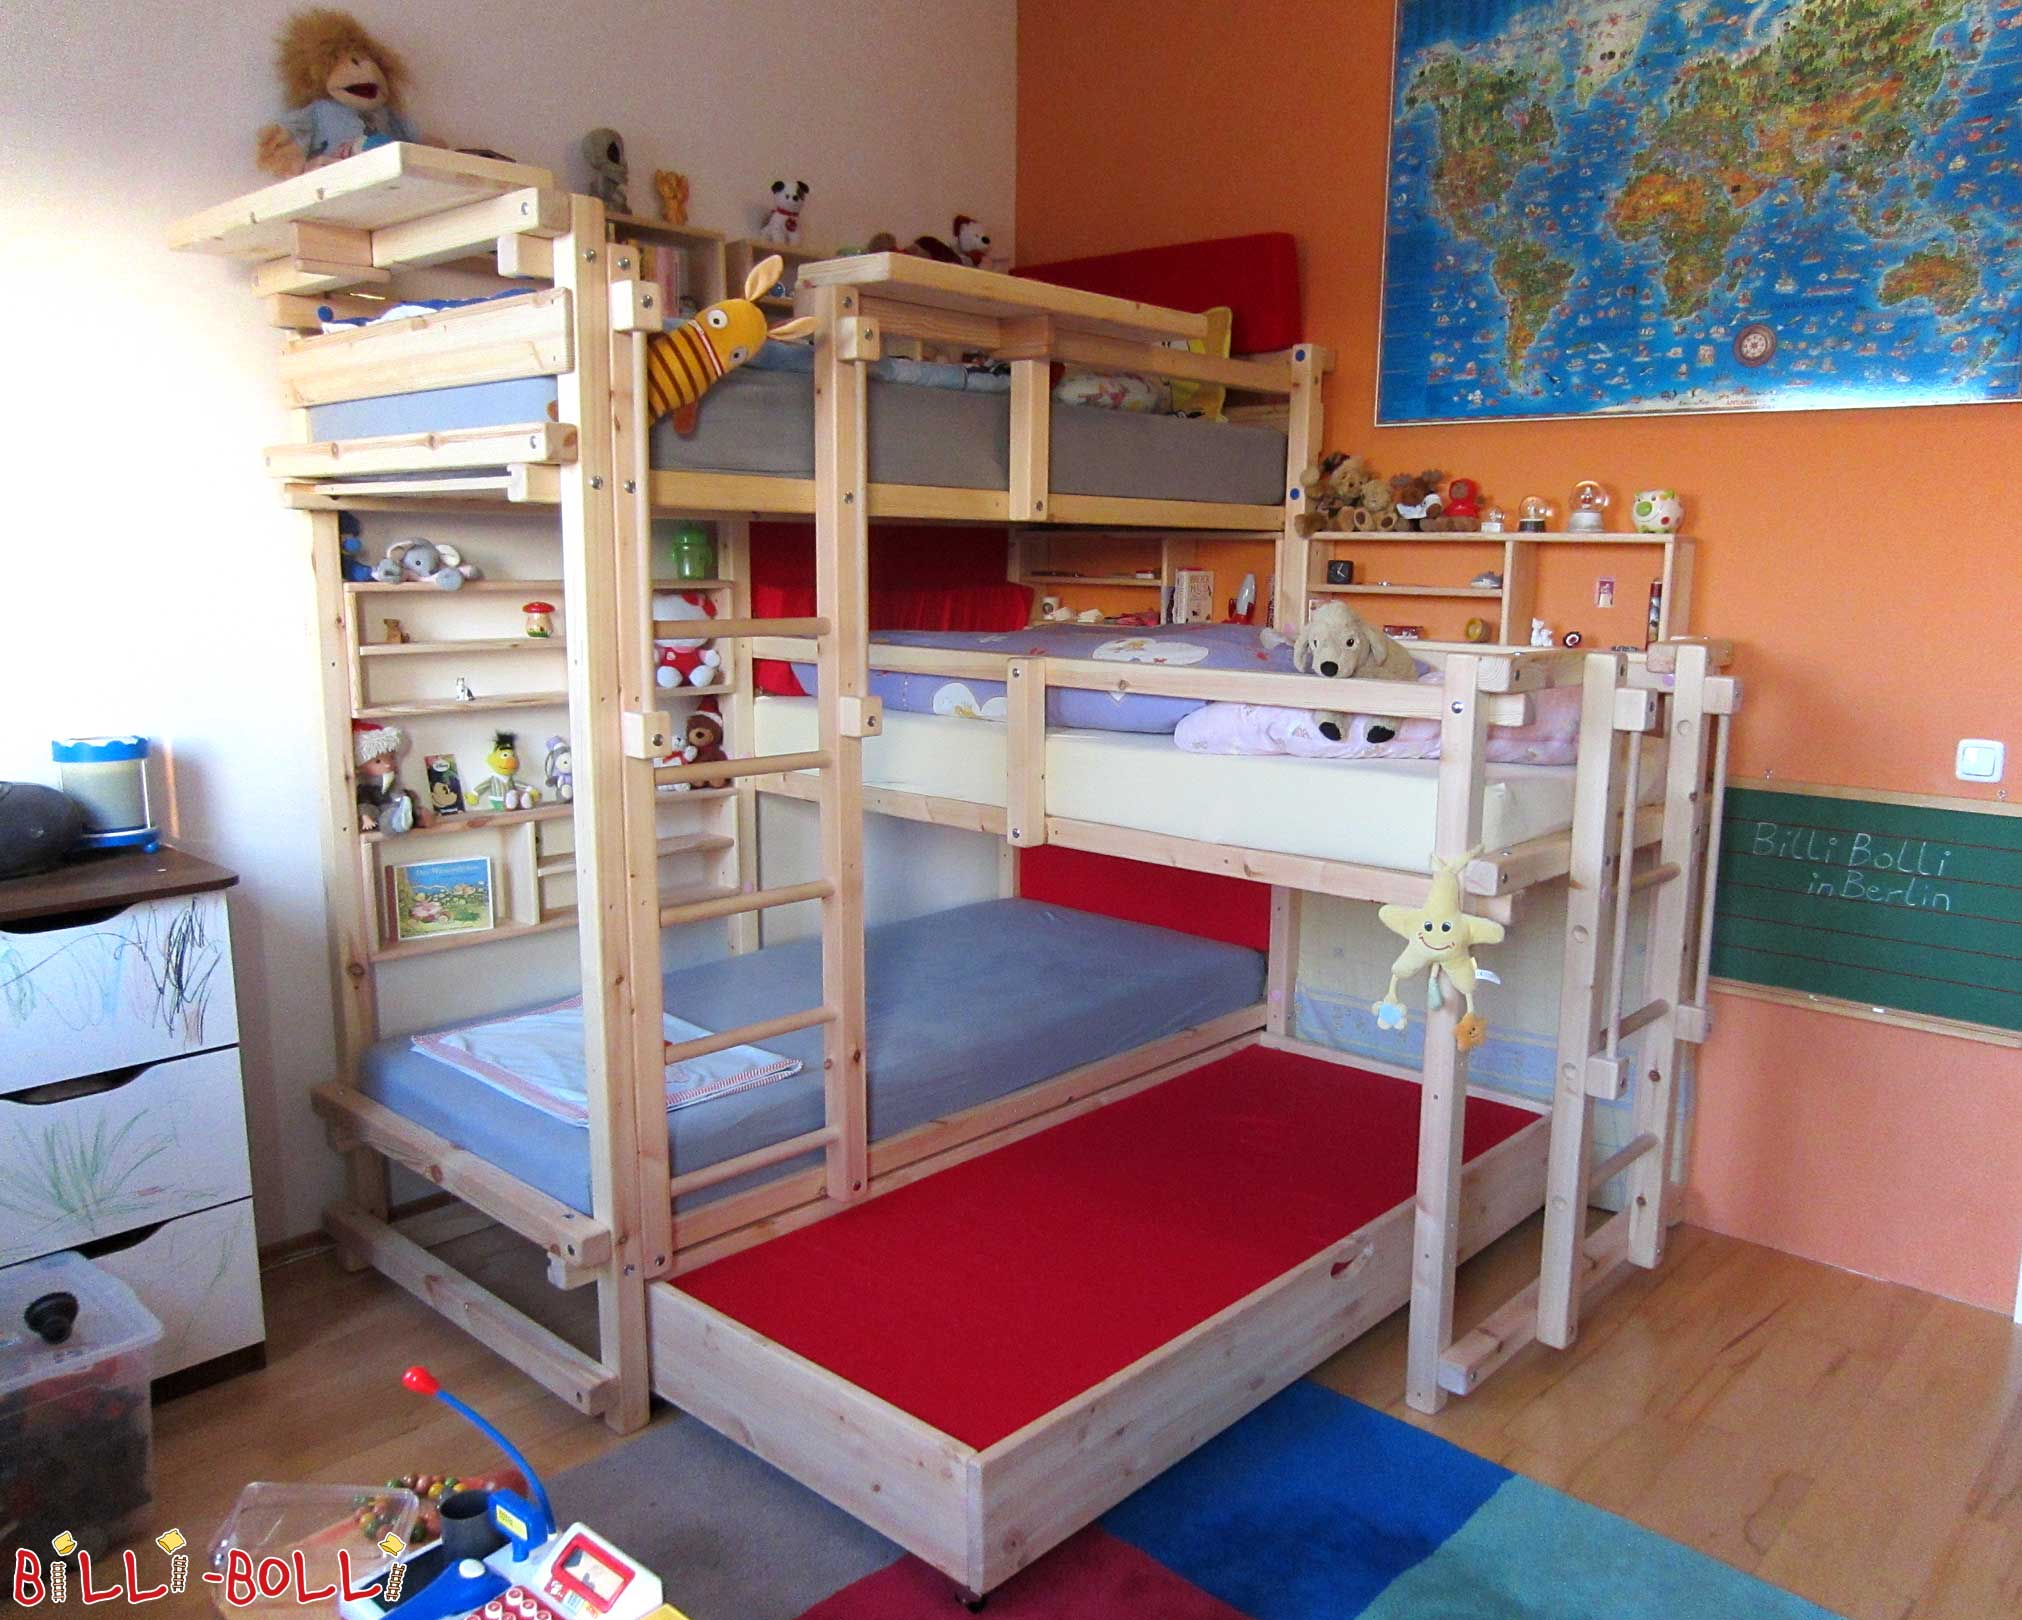 Beds for three billi bolli kids furniture for Kinderzimmer mit 2 betten